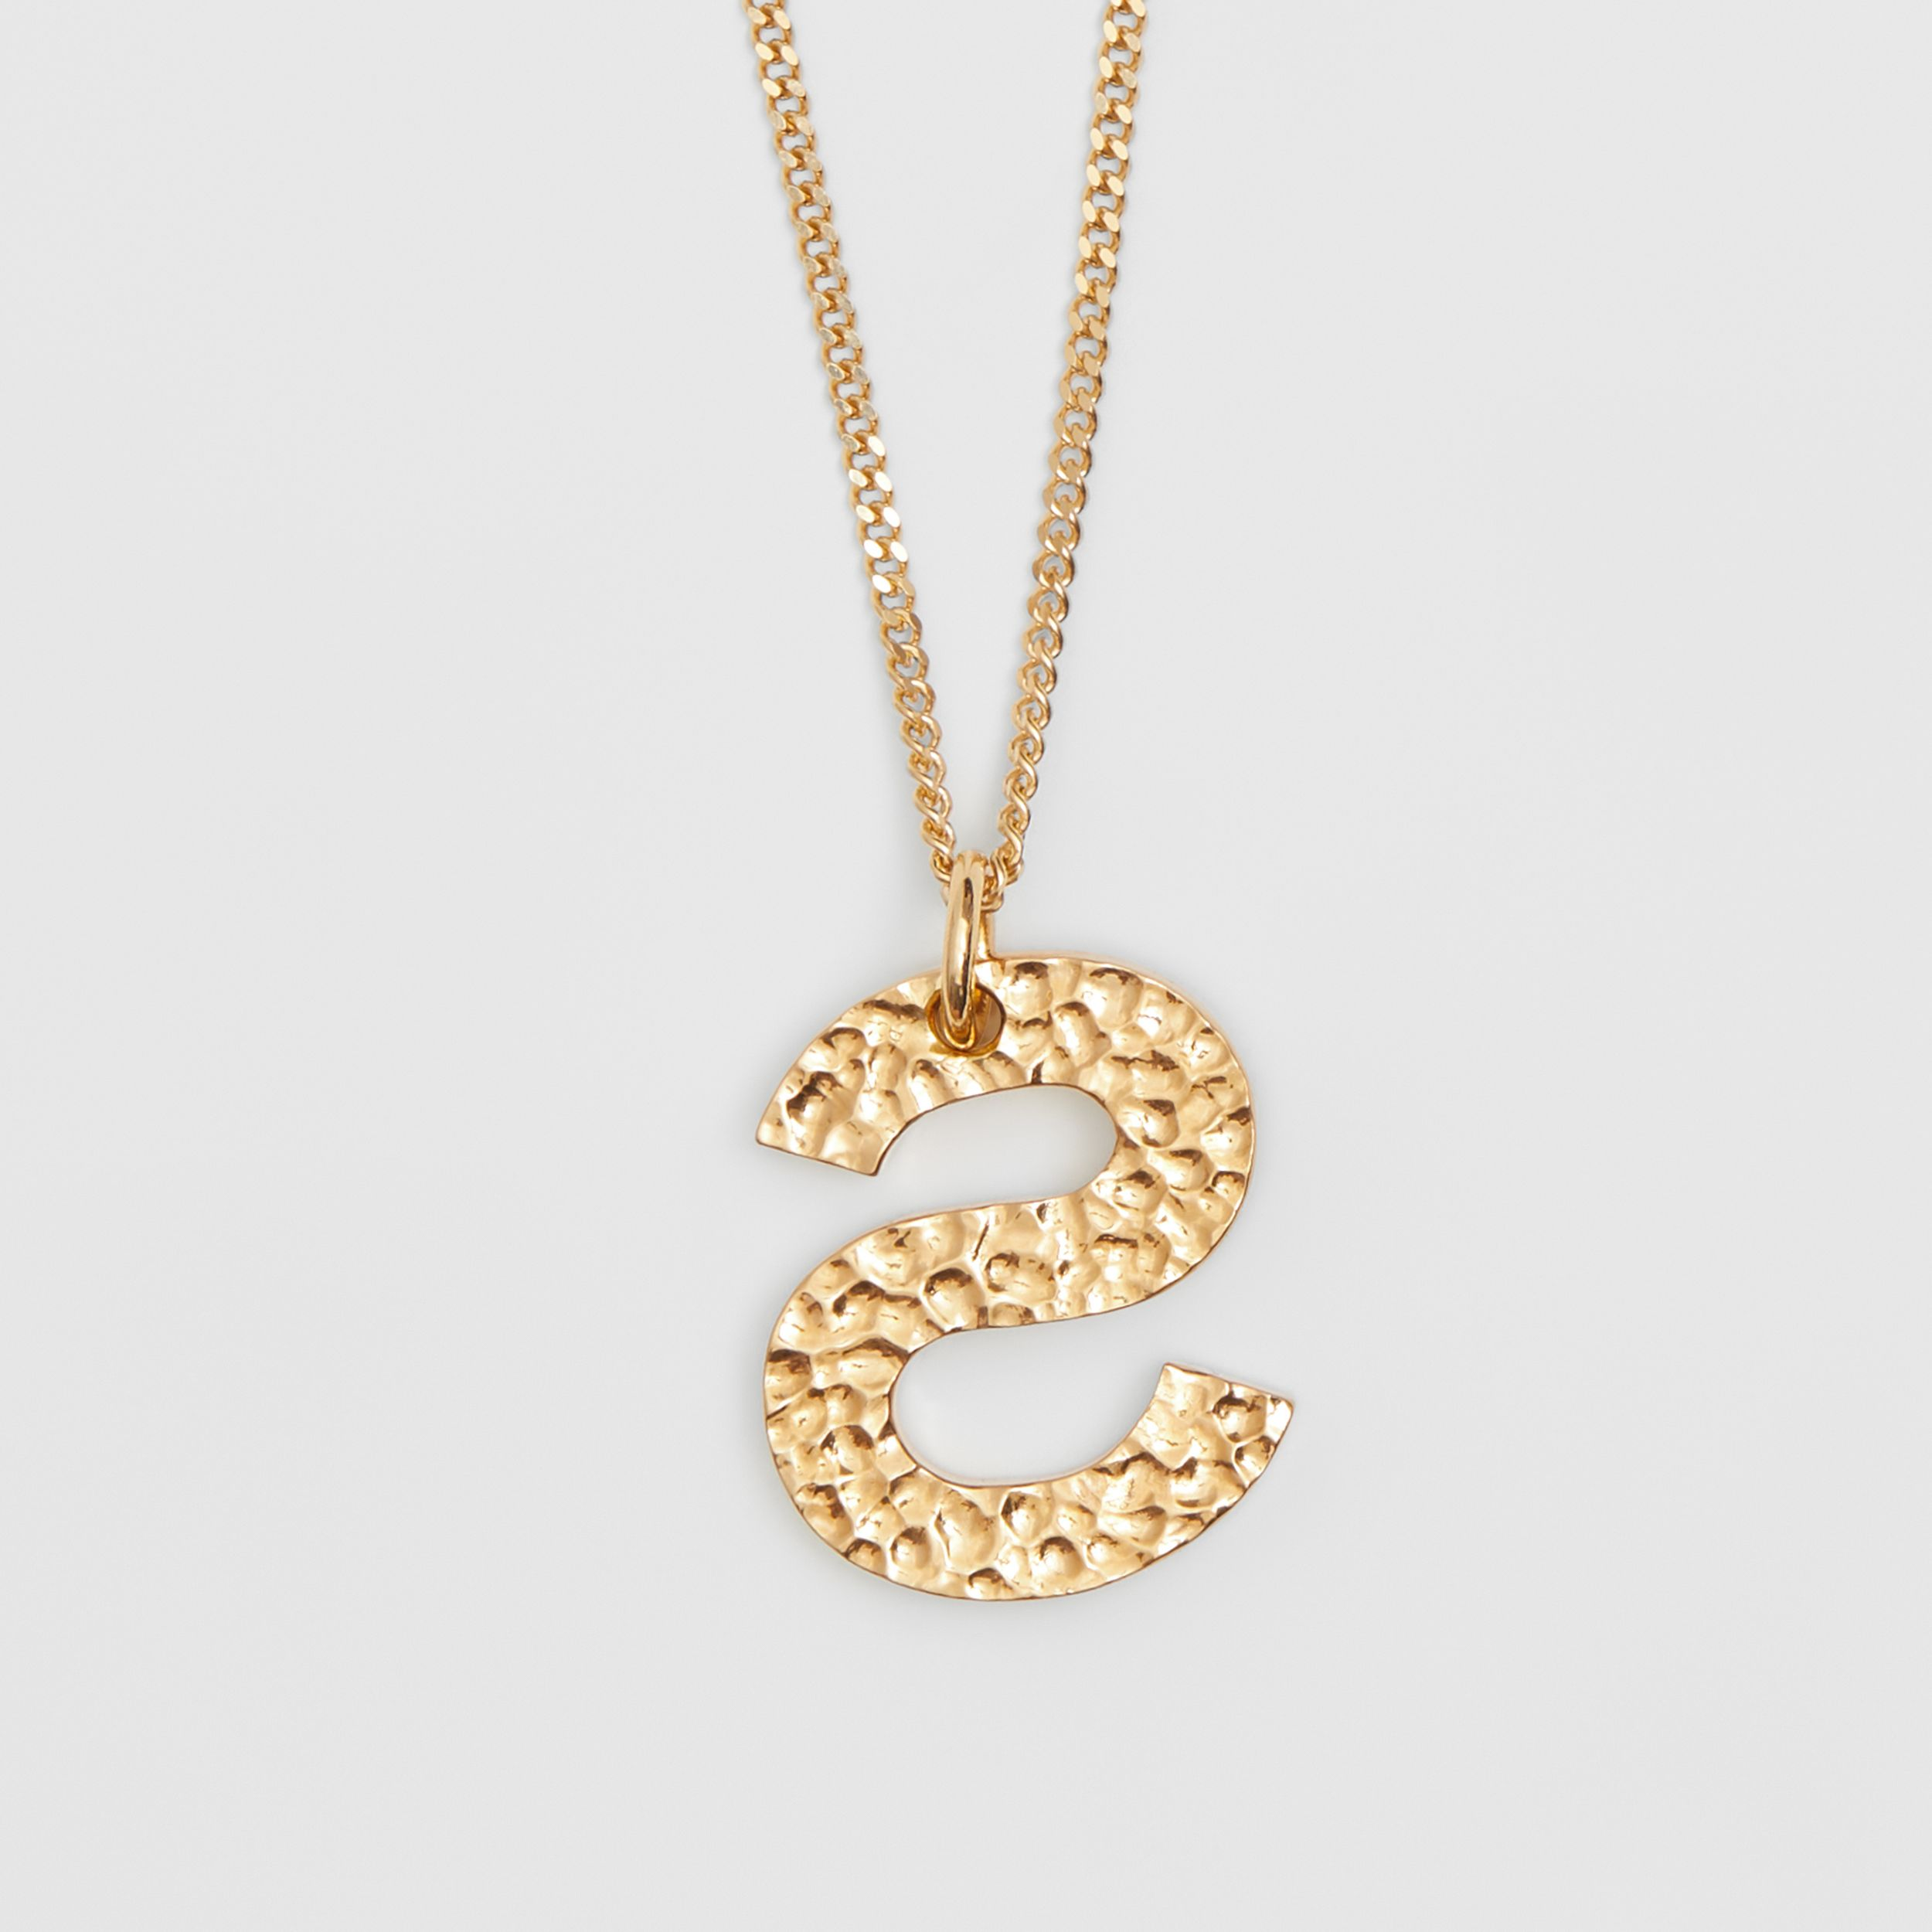 'S' Alphabet Charm Gold-plated Necklace in Light - Women | Burberry - 4